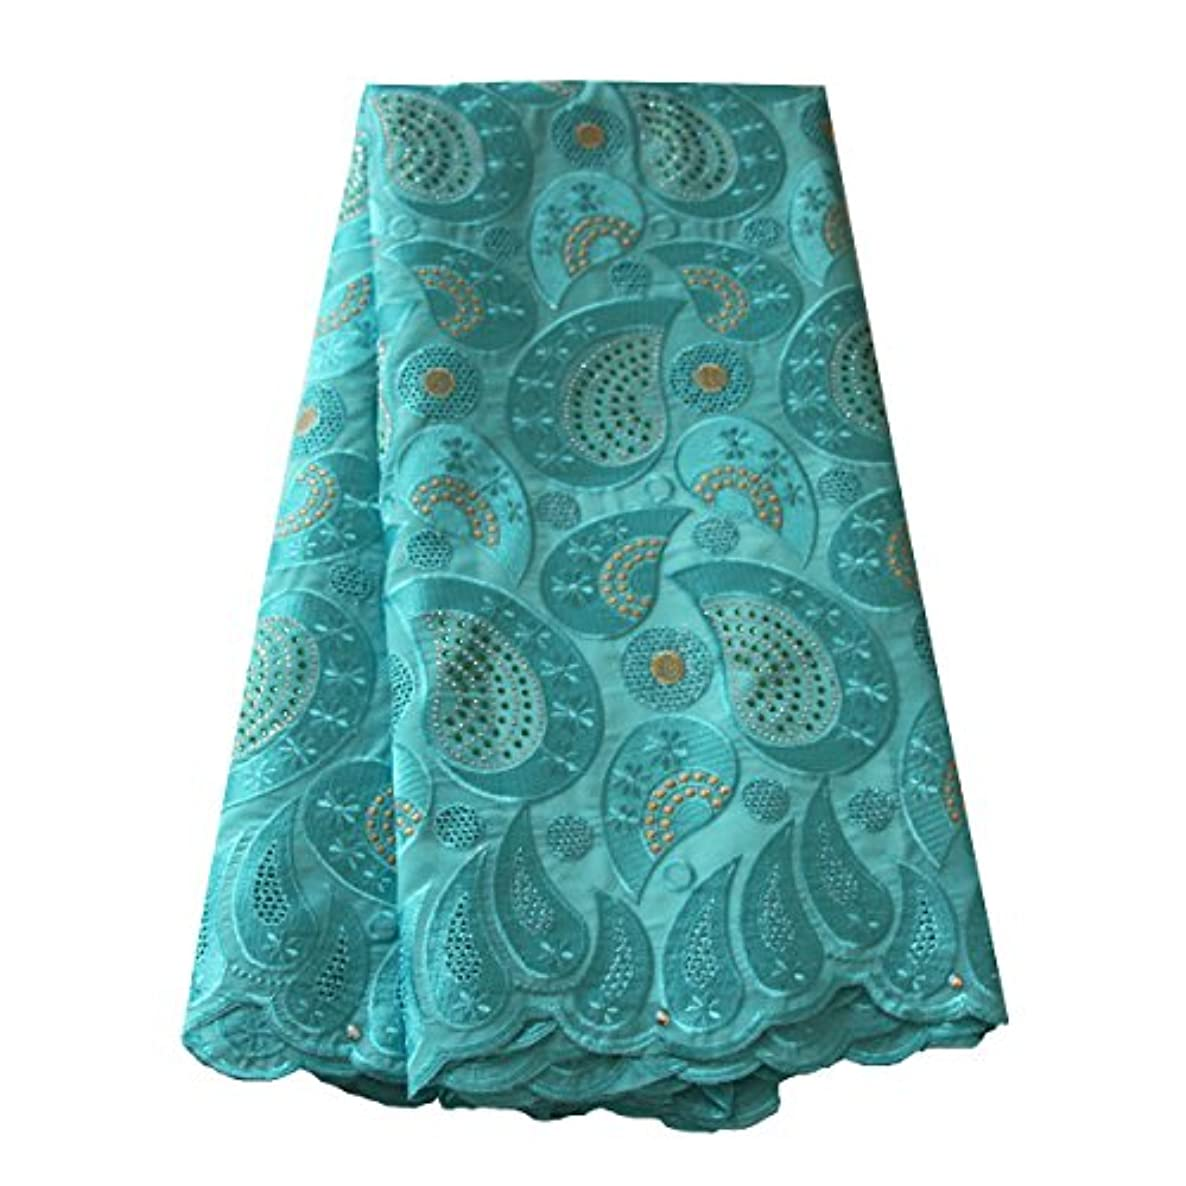 pqdaysun African Swiss Voile Fabric Lace Fabric Nigerian French Lace Net Fabric Embroidered Fabric for Wedding Party F50720 (Aqua)